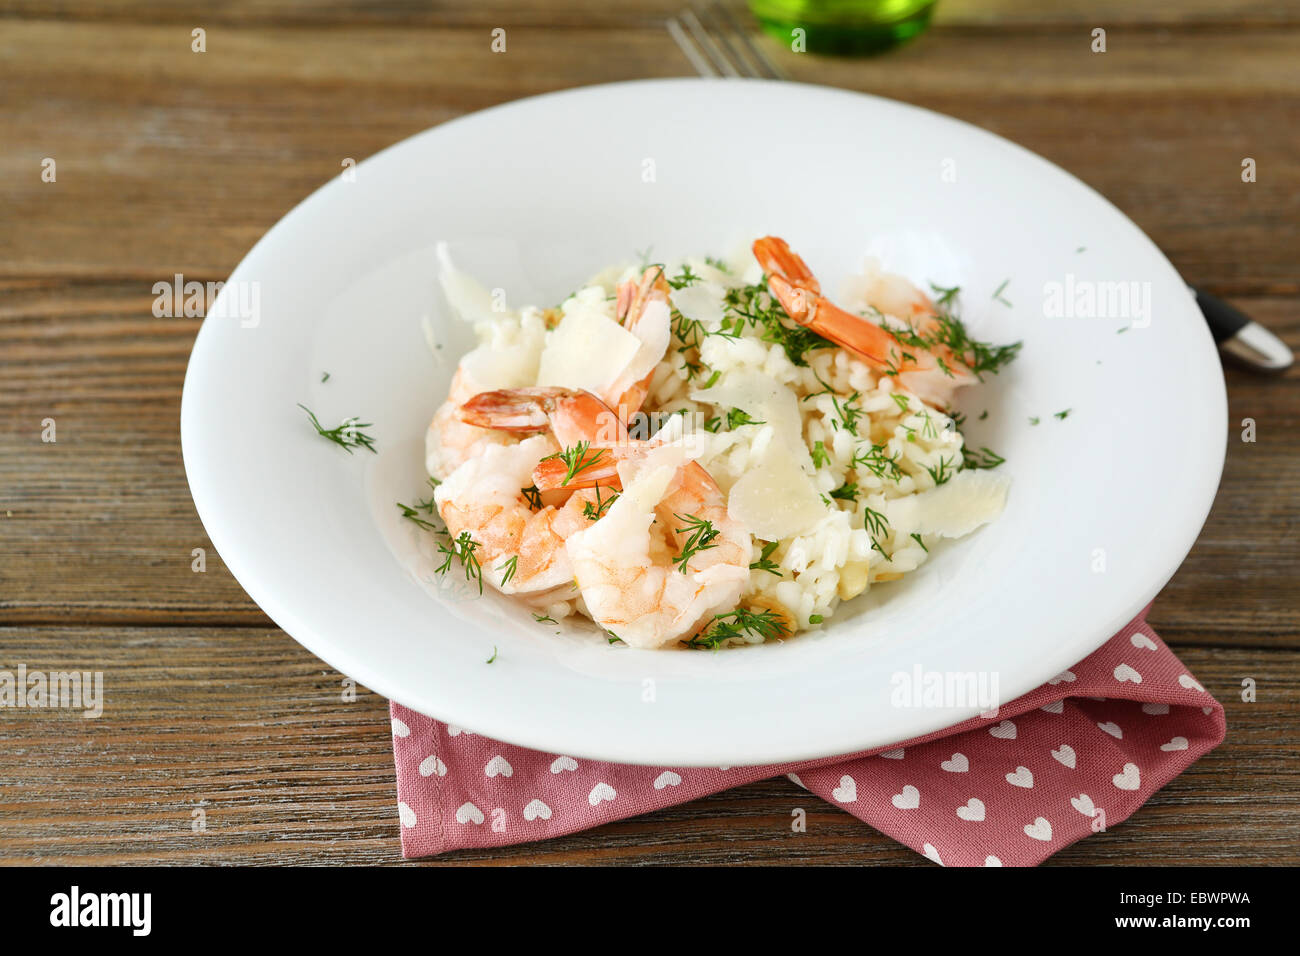 Rice with shrimp and dill on a plate, nutritious food - Stock Image